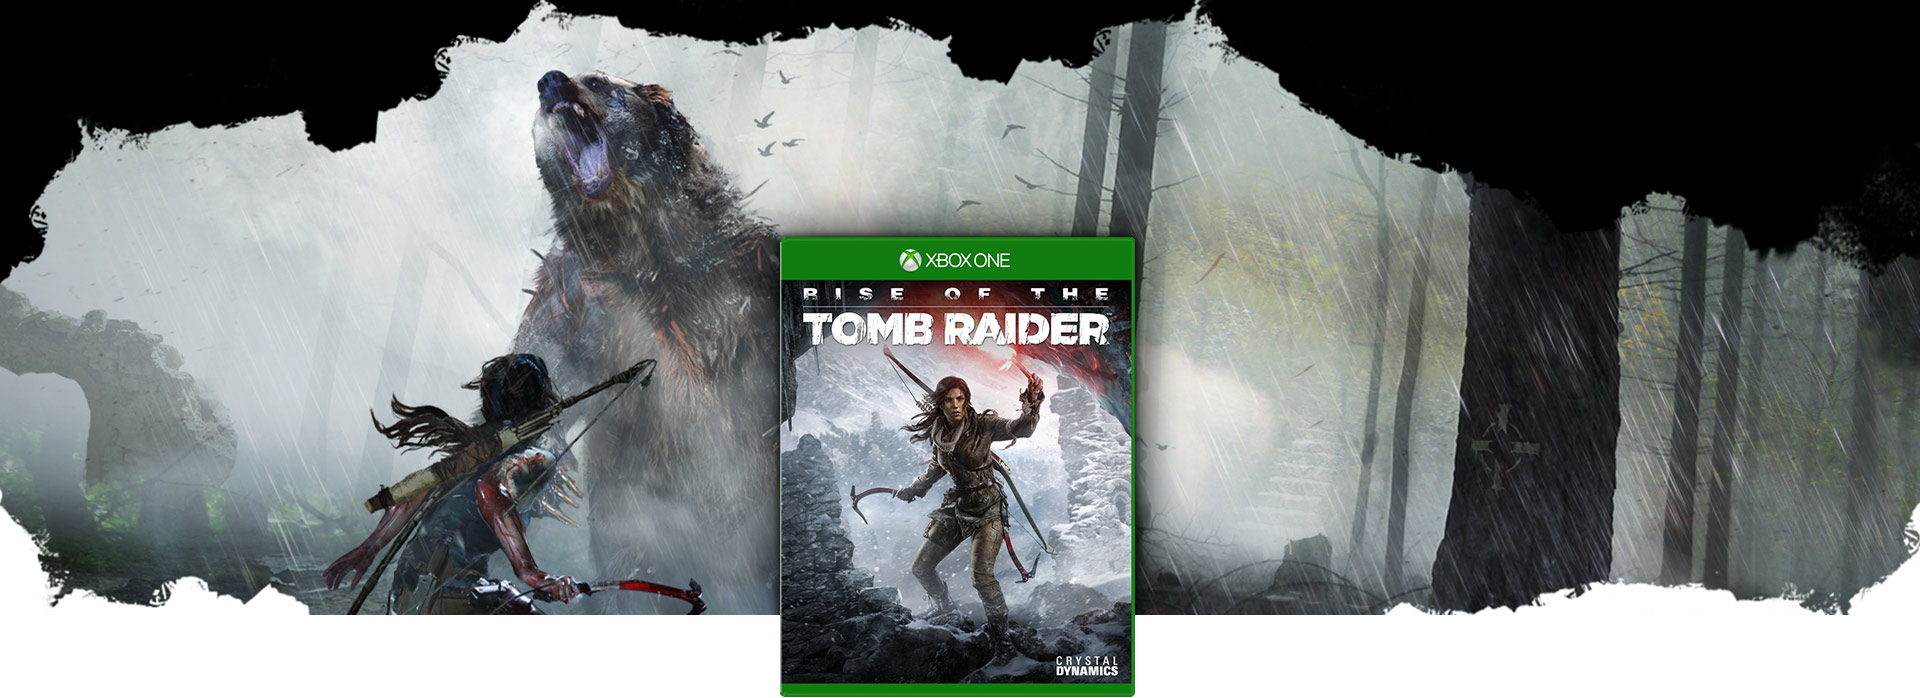 Rise of the Tomb Raider box shot, over a background scene of Lara Croft confronting a Grizzly Bear